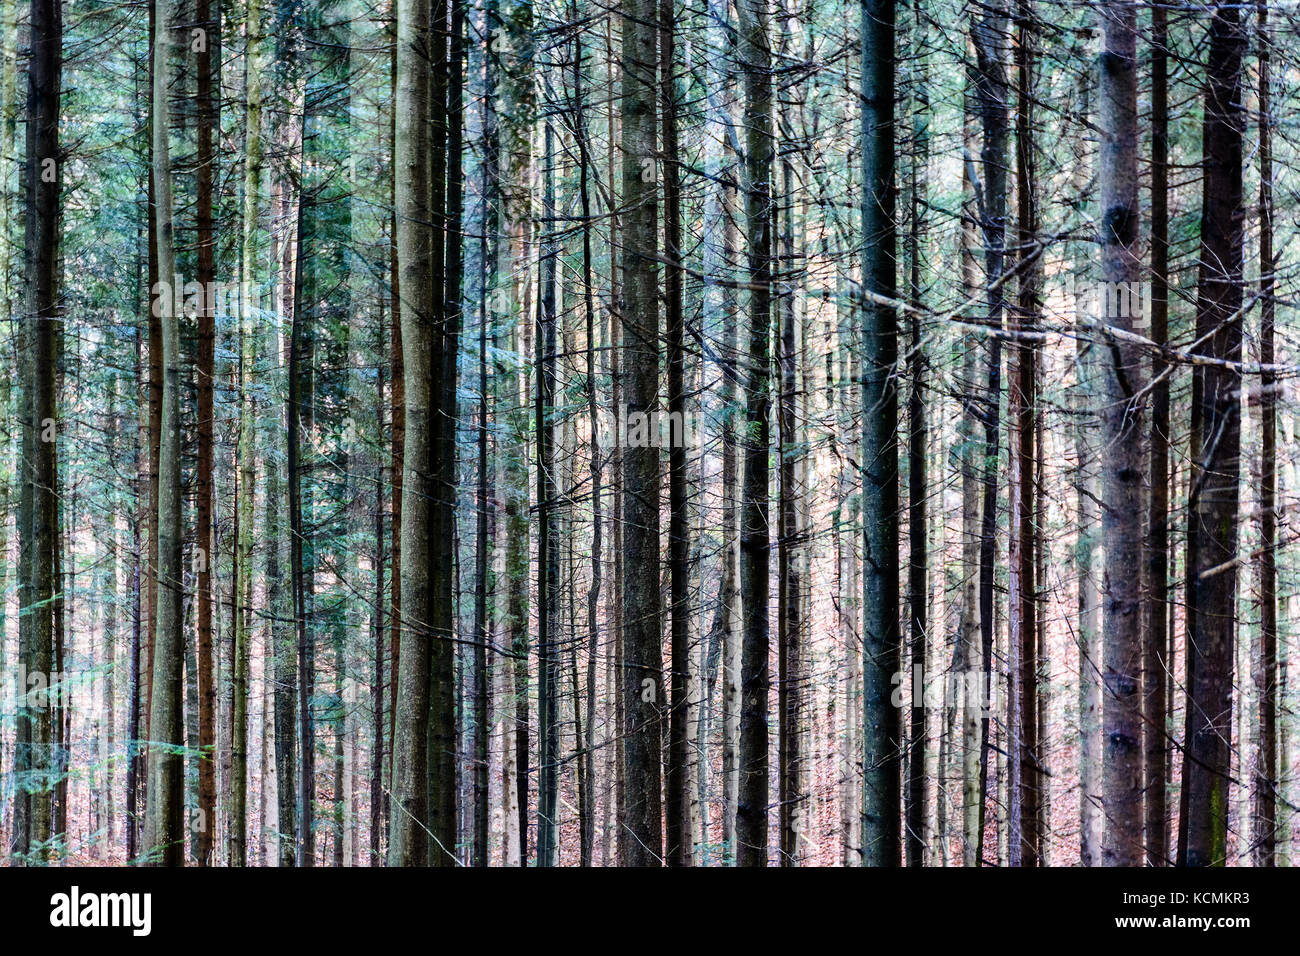 Color multiple exposure abstract artful image of trees in a forest, surreal natural outdoor pattern - Stock Image